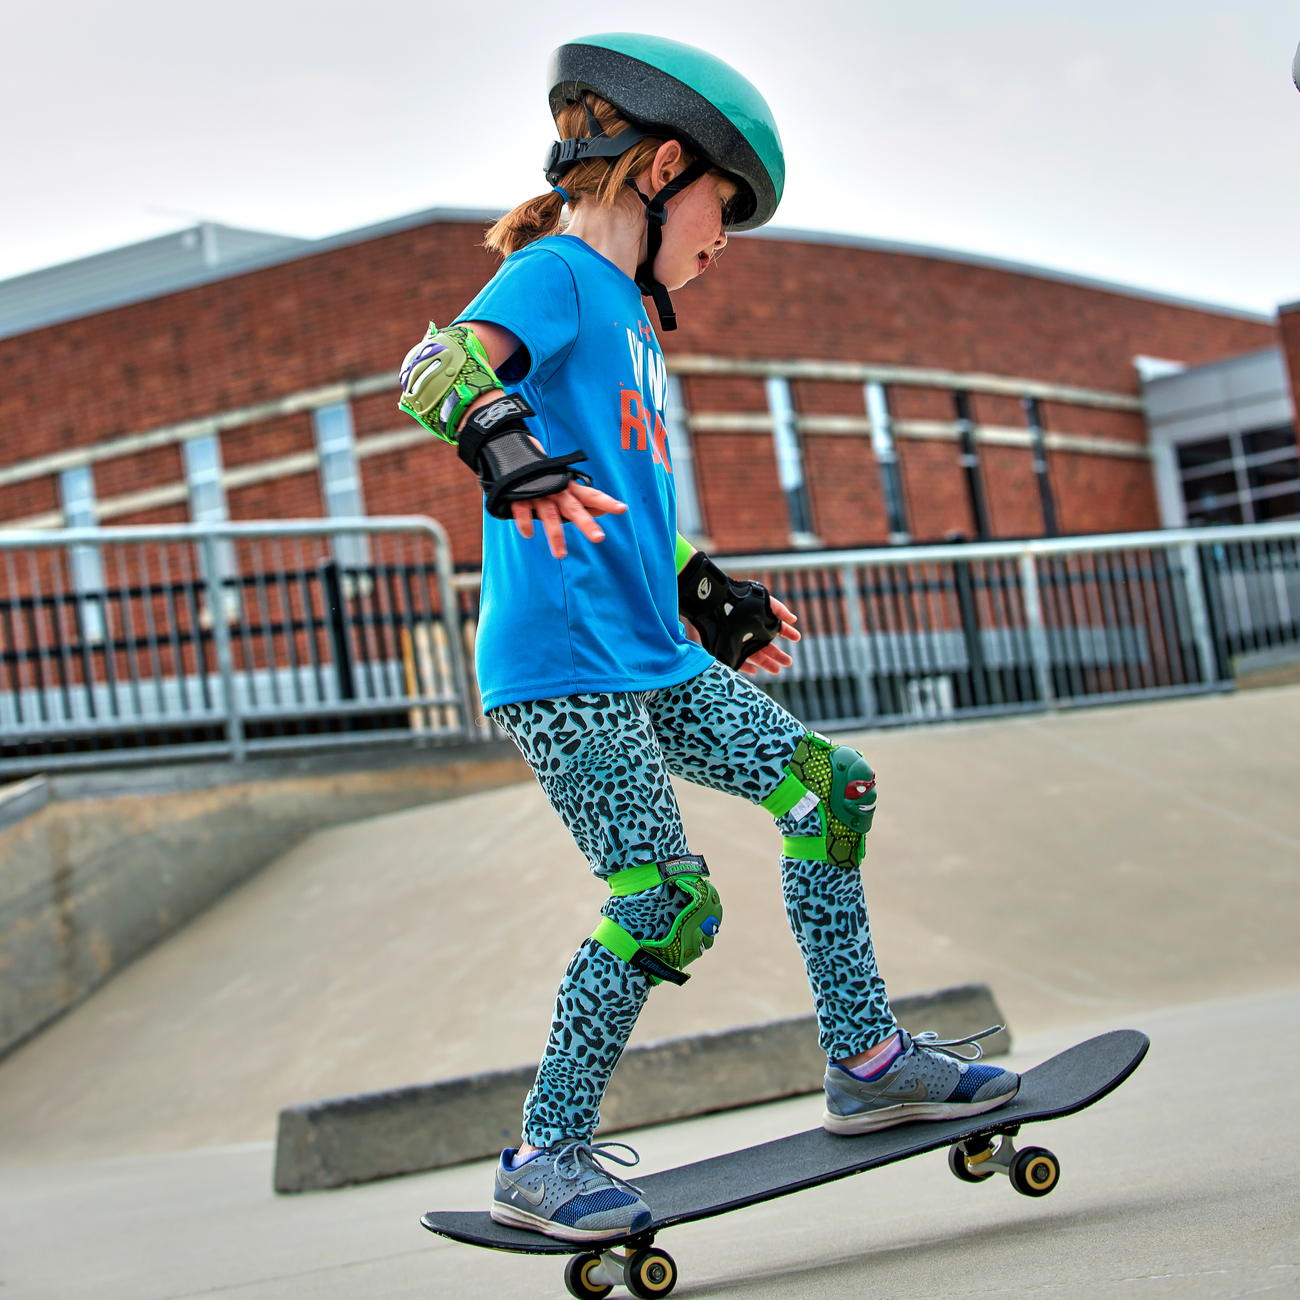 Girl skating at the skate park at the Monon Community Center in Carmel